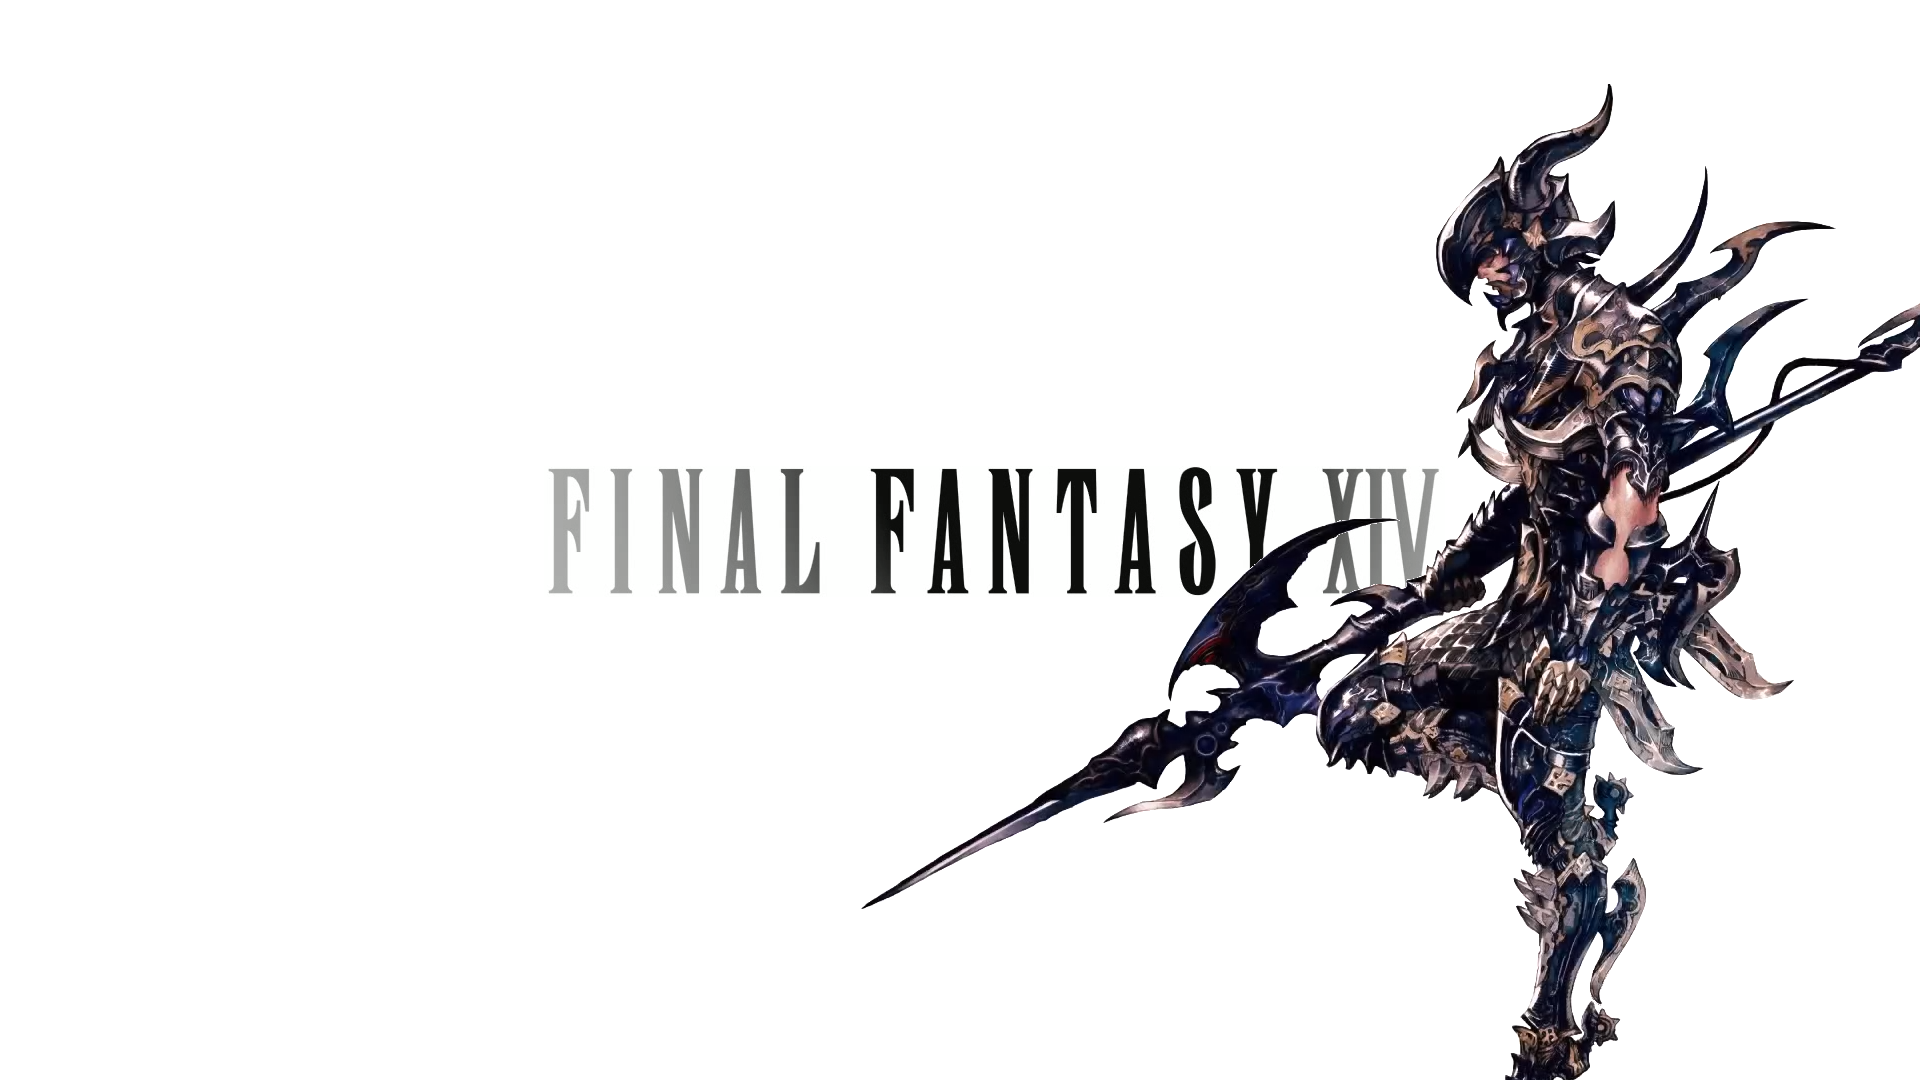 Final Fantasy Backgrounds (1920x1080 px, JNC8888)